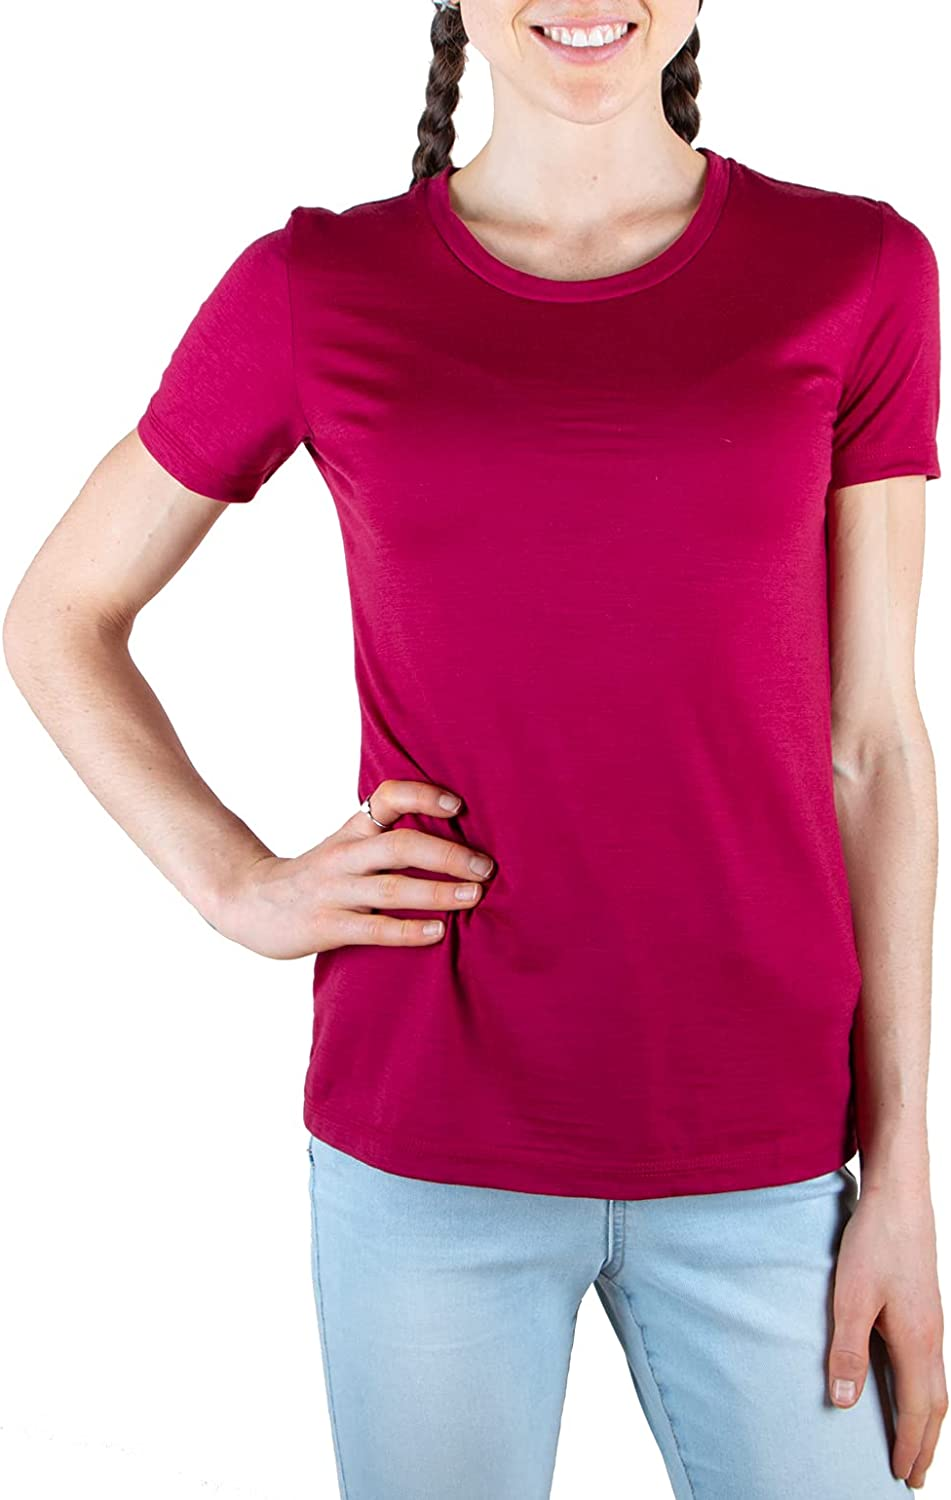 Merino 365 Women's Crew T-Shirt Sleeve Short 70% OFF Max 59% OFF Outlet